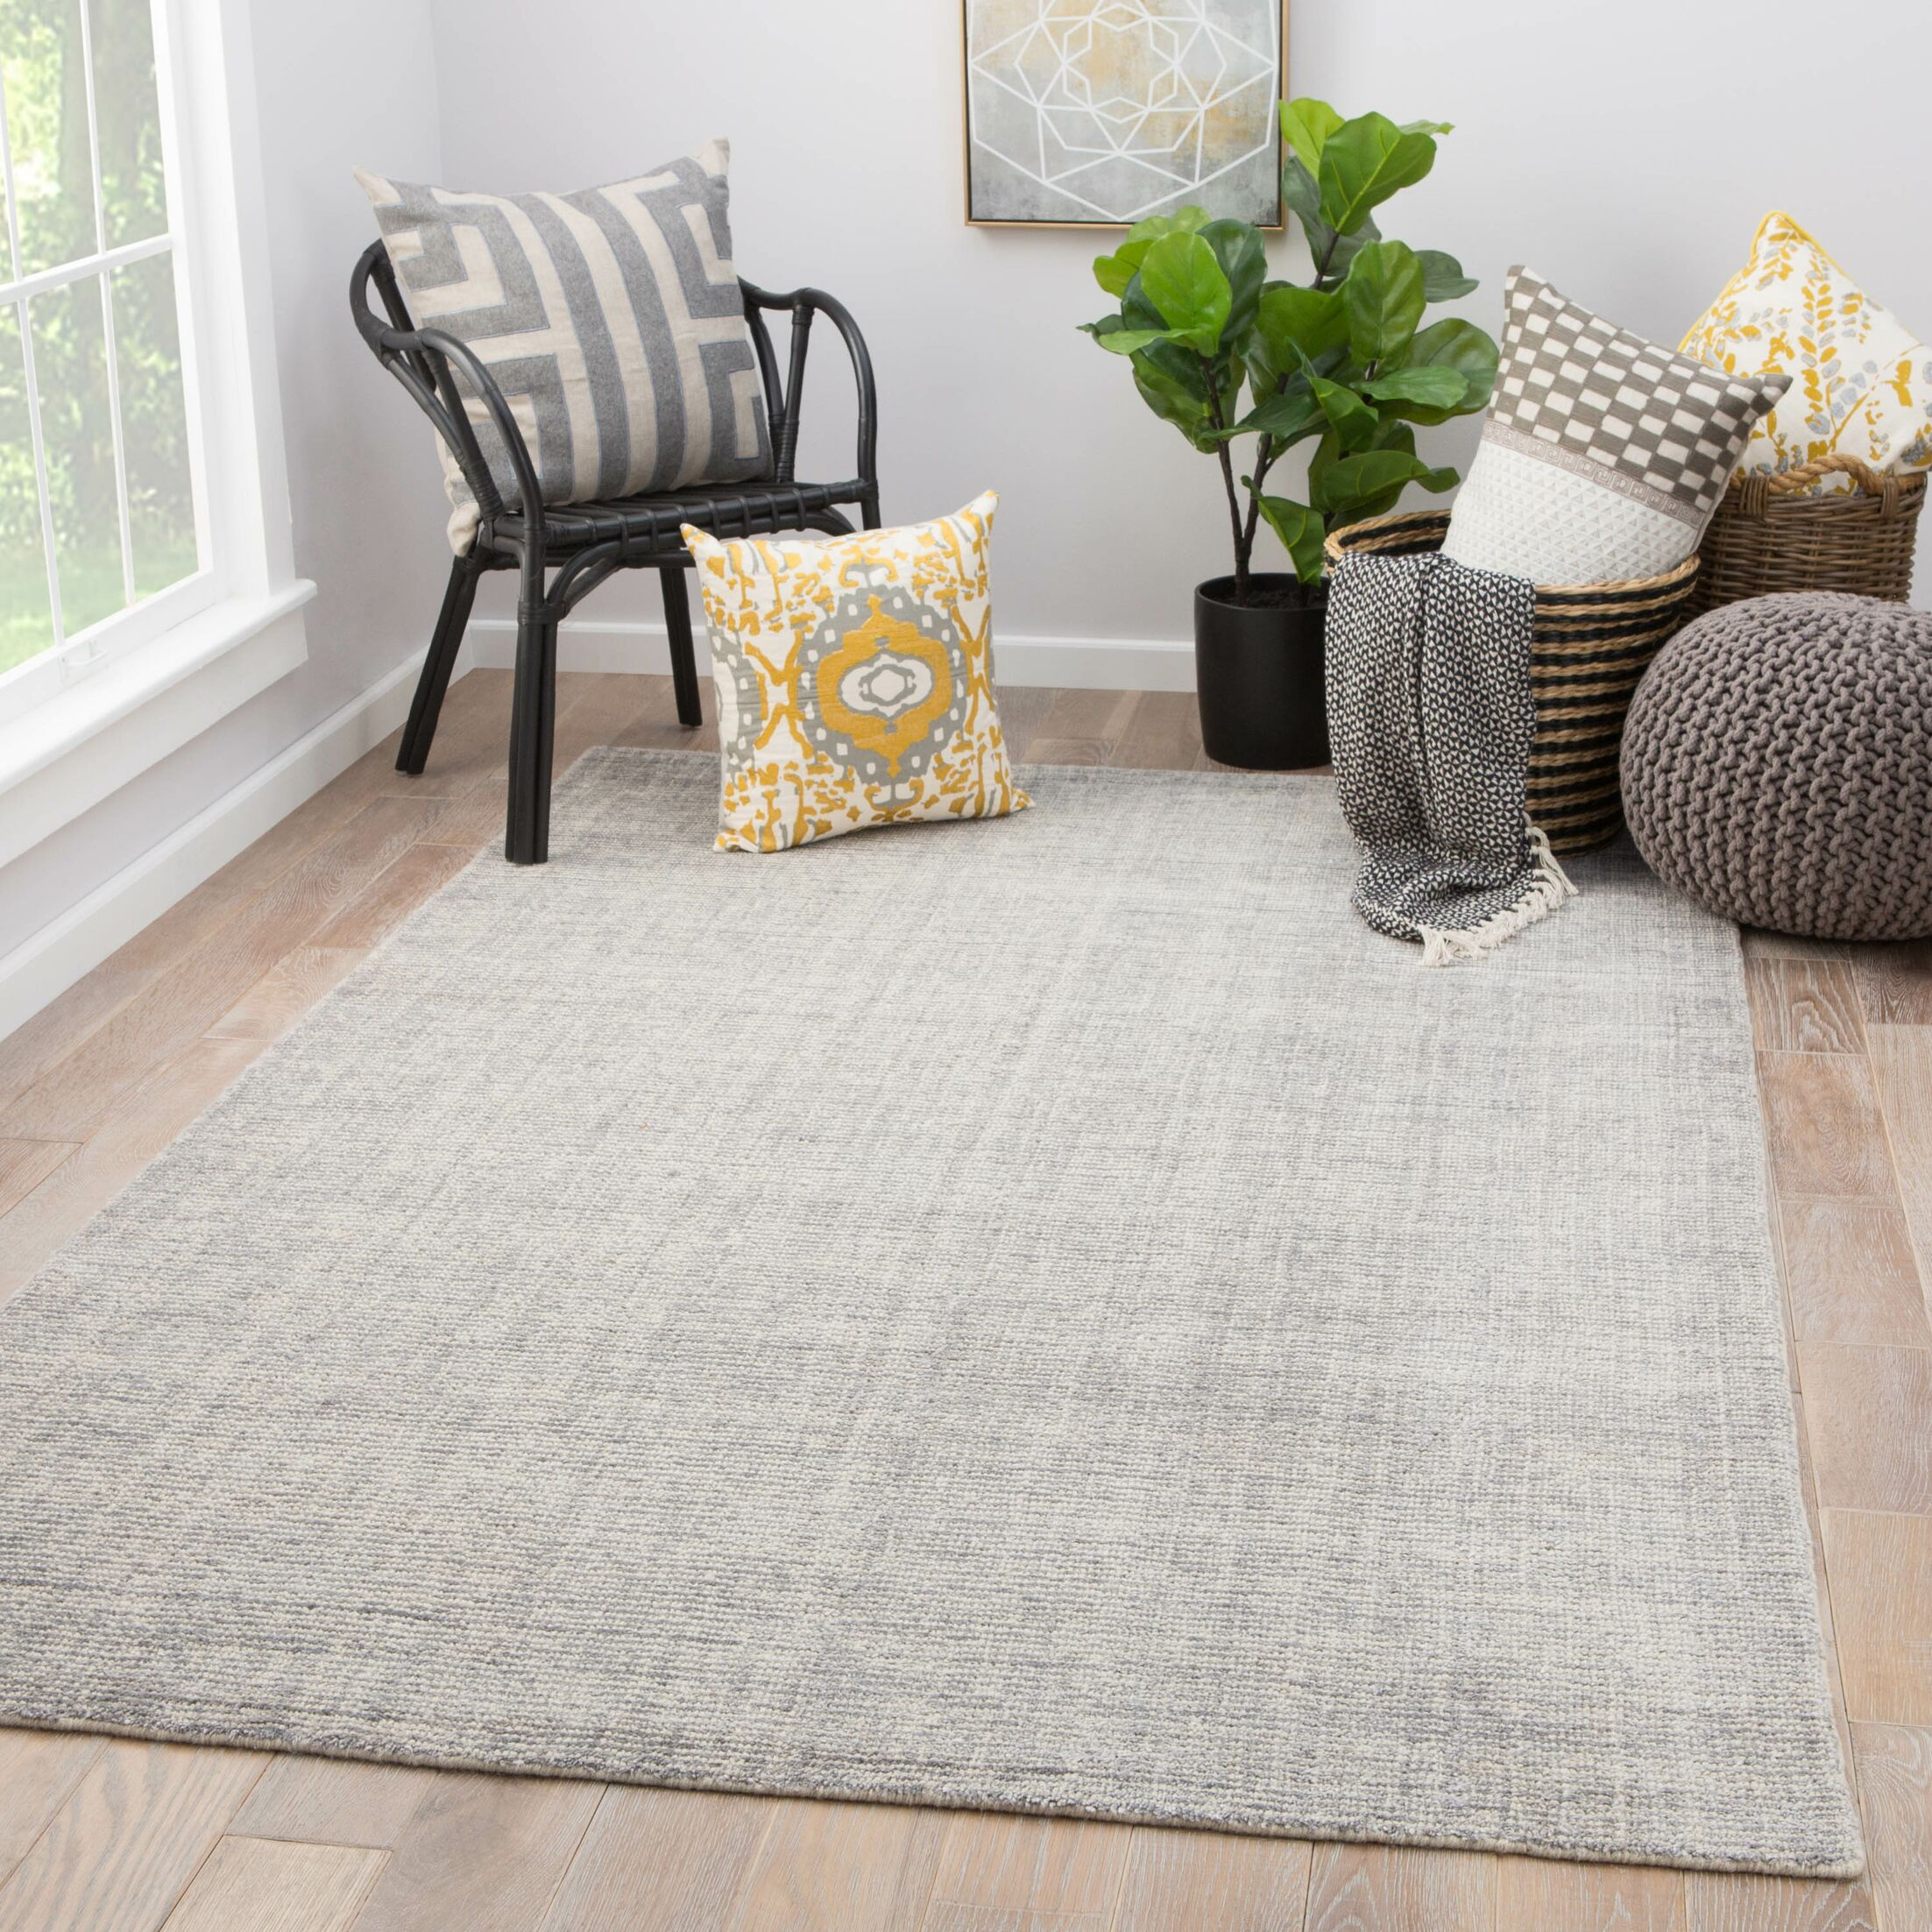 Lev Hand-Knotted Light Gray Area Rug Rug Size: Rectangle 9' x 13'